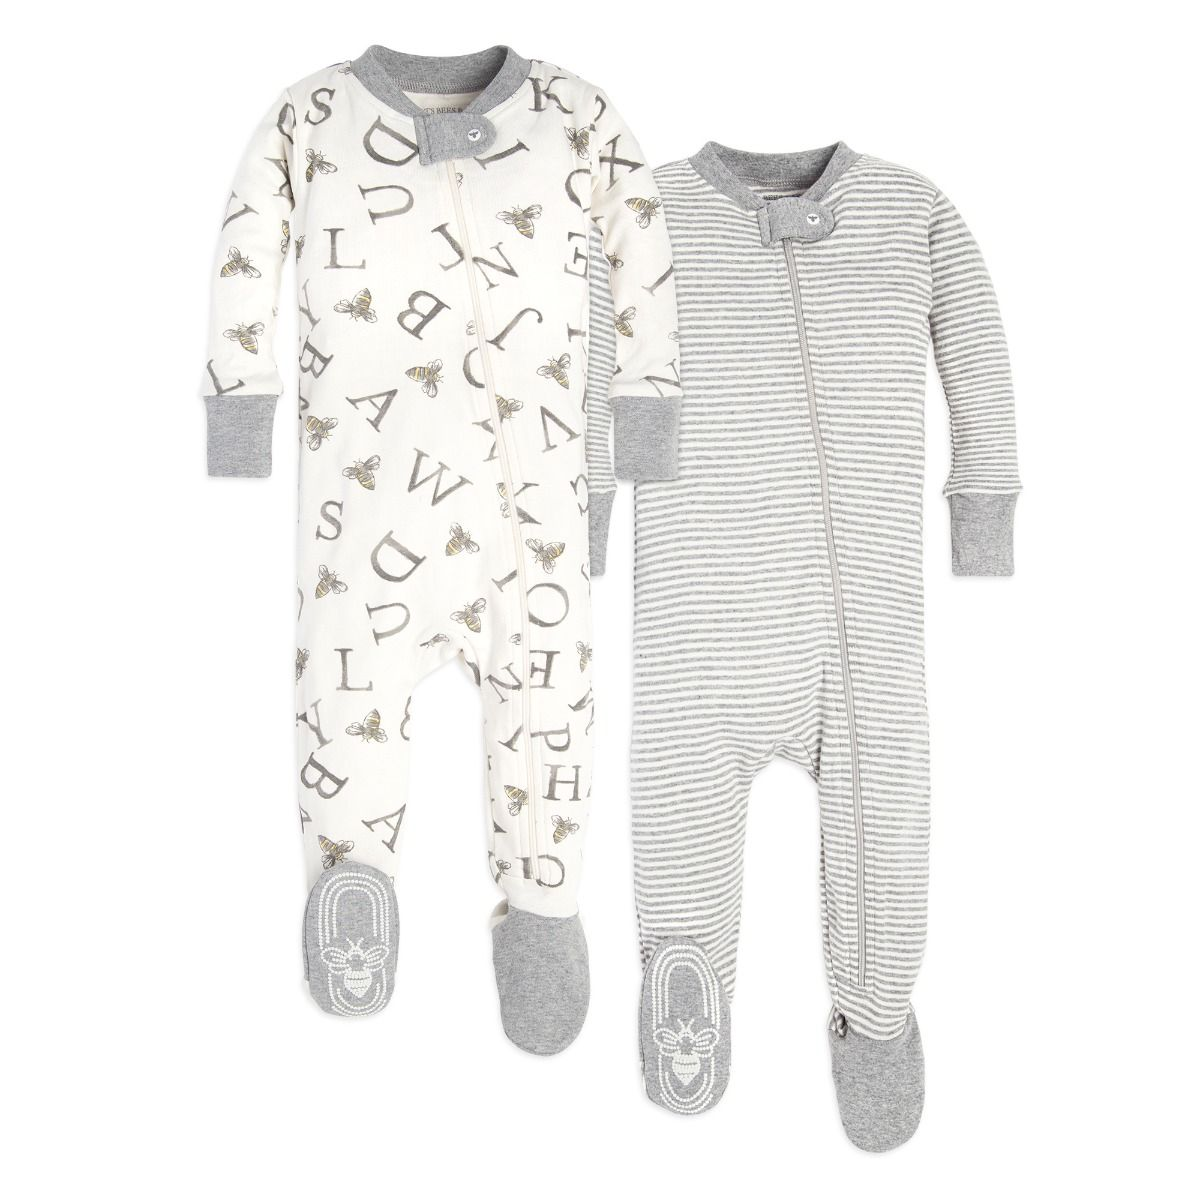 zip pajamas- registry must haves second baby- she got guts.jpg